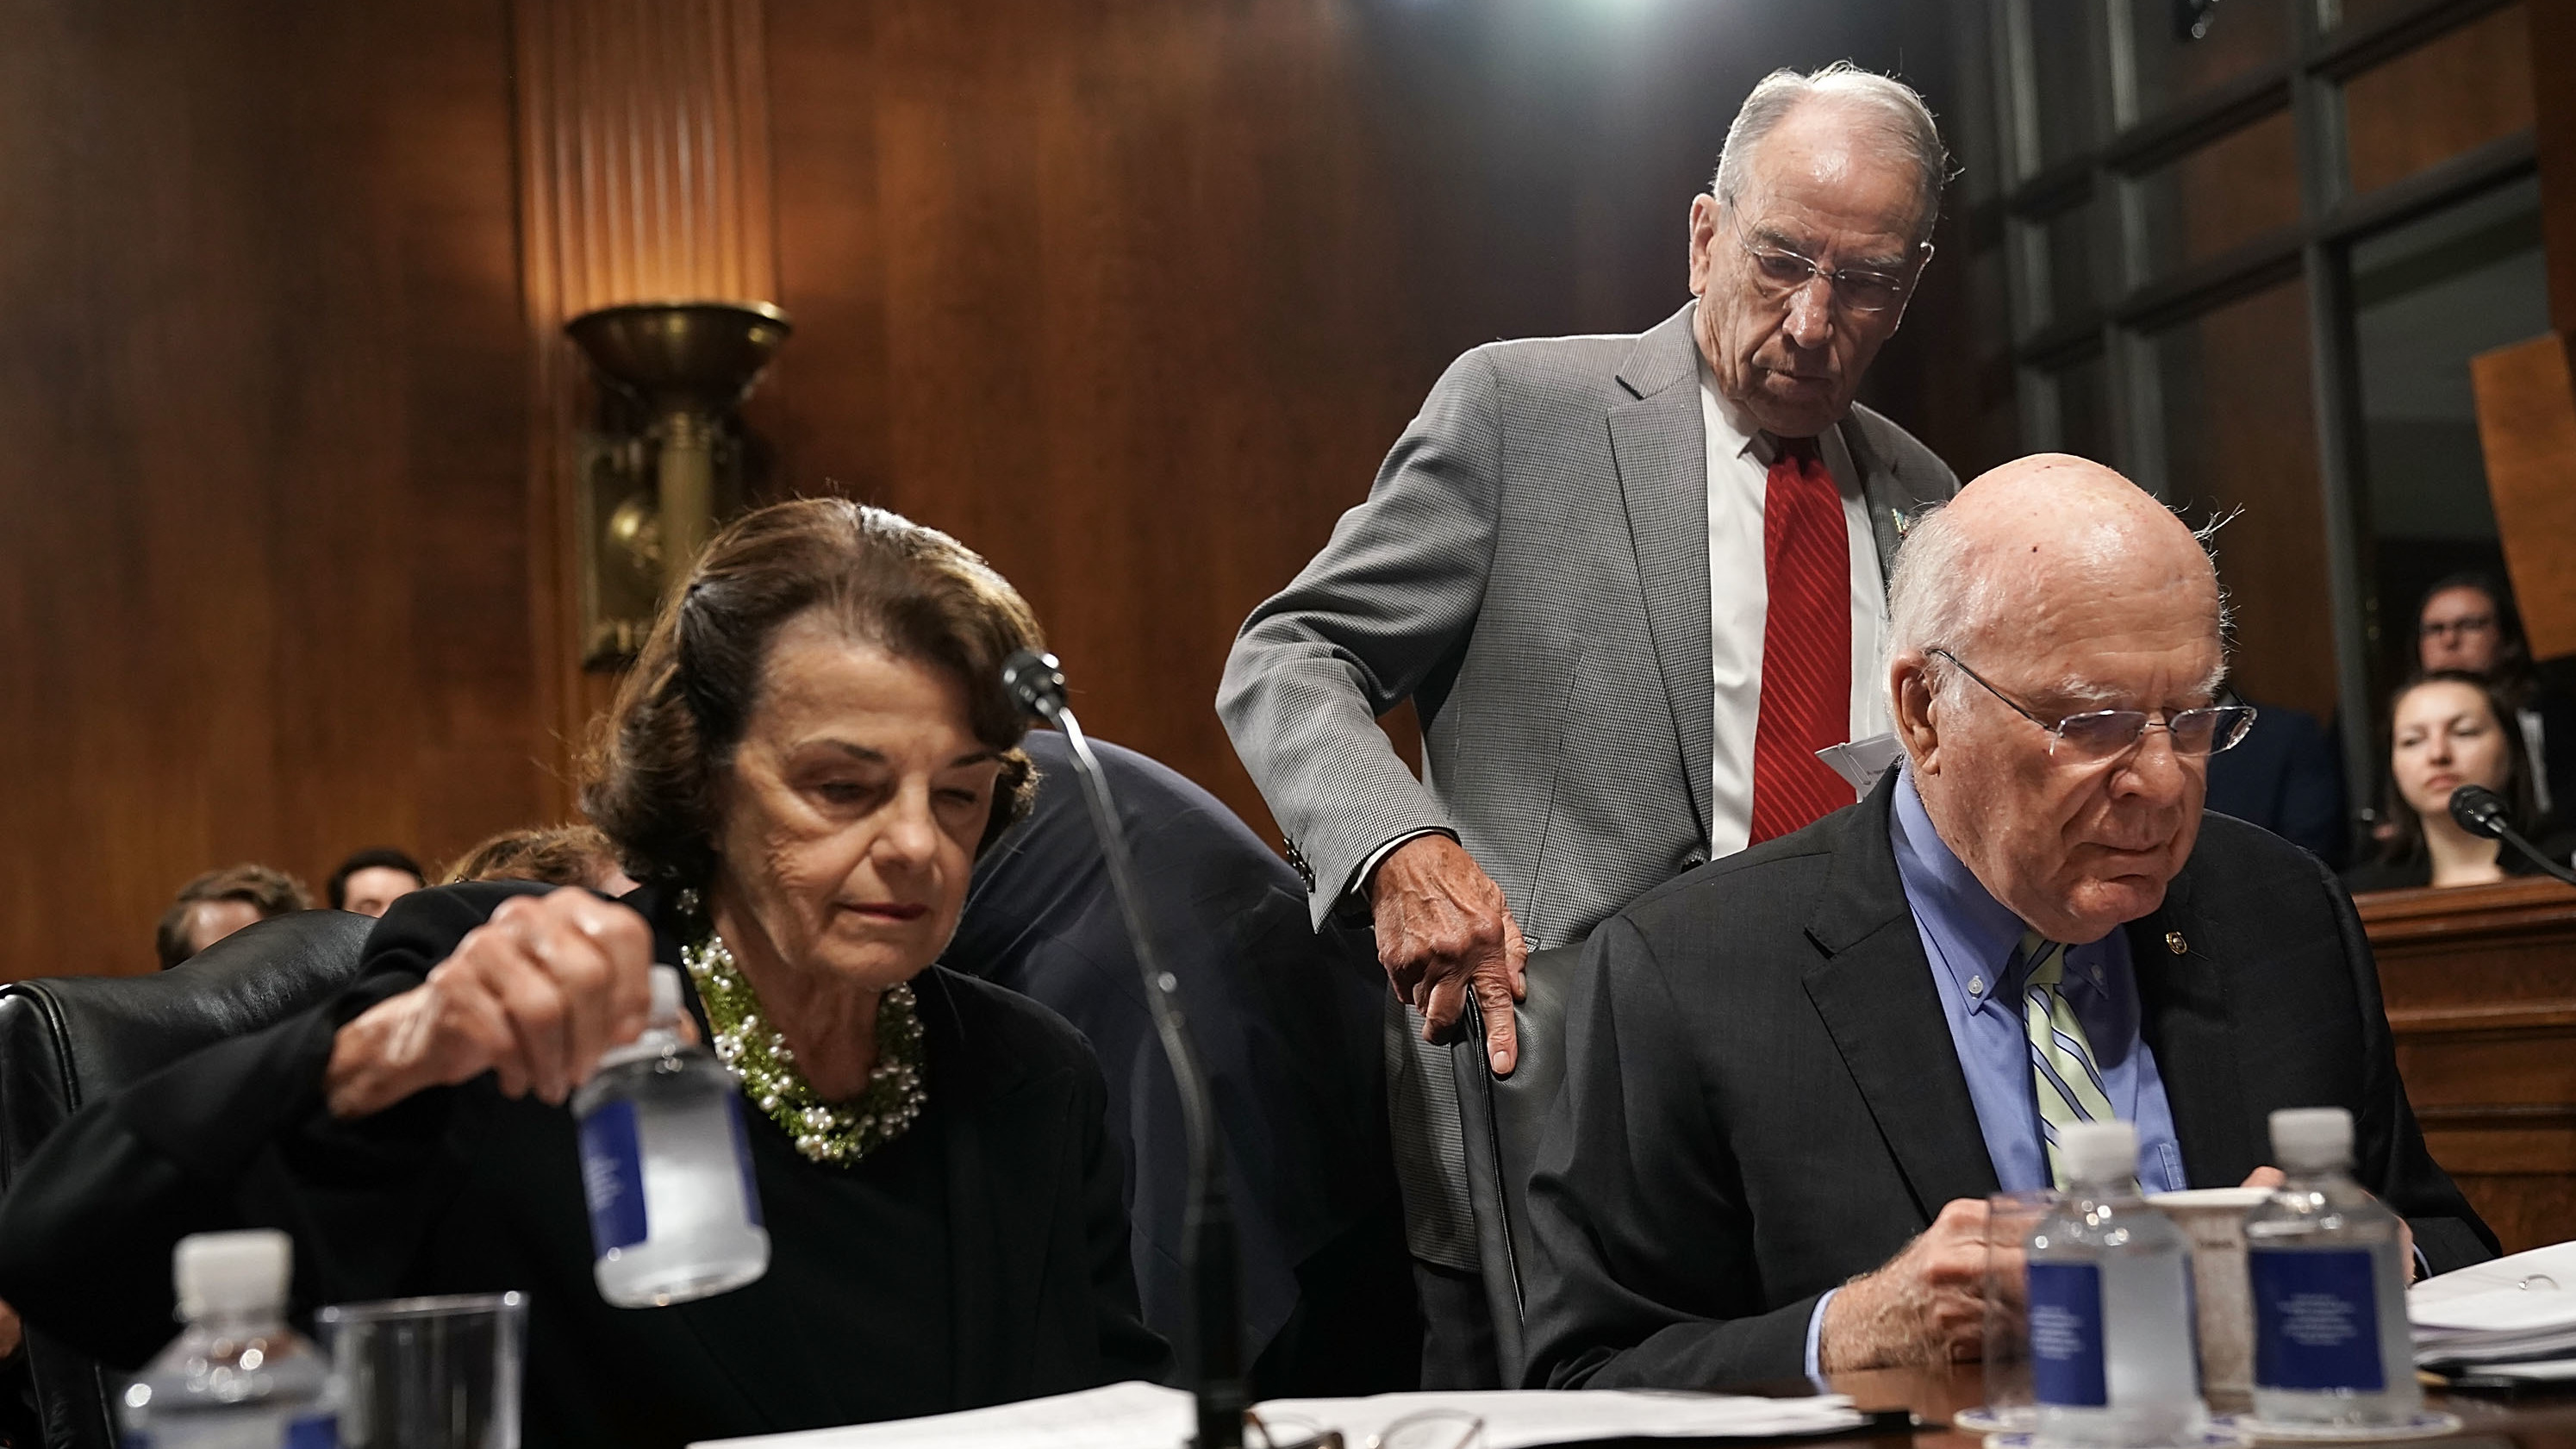 npr.org - Tamara Keith - Democrats Want FBI To Investigate Kavanaugh Allegations. It Likely Won't